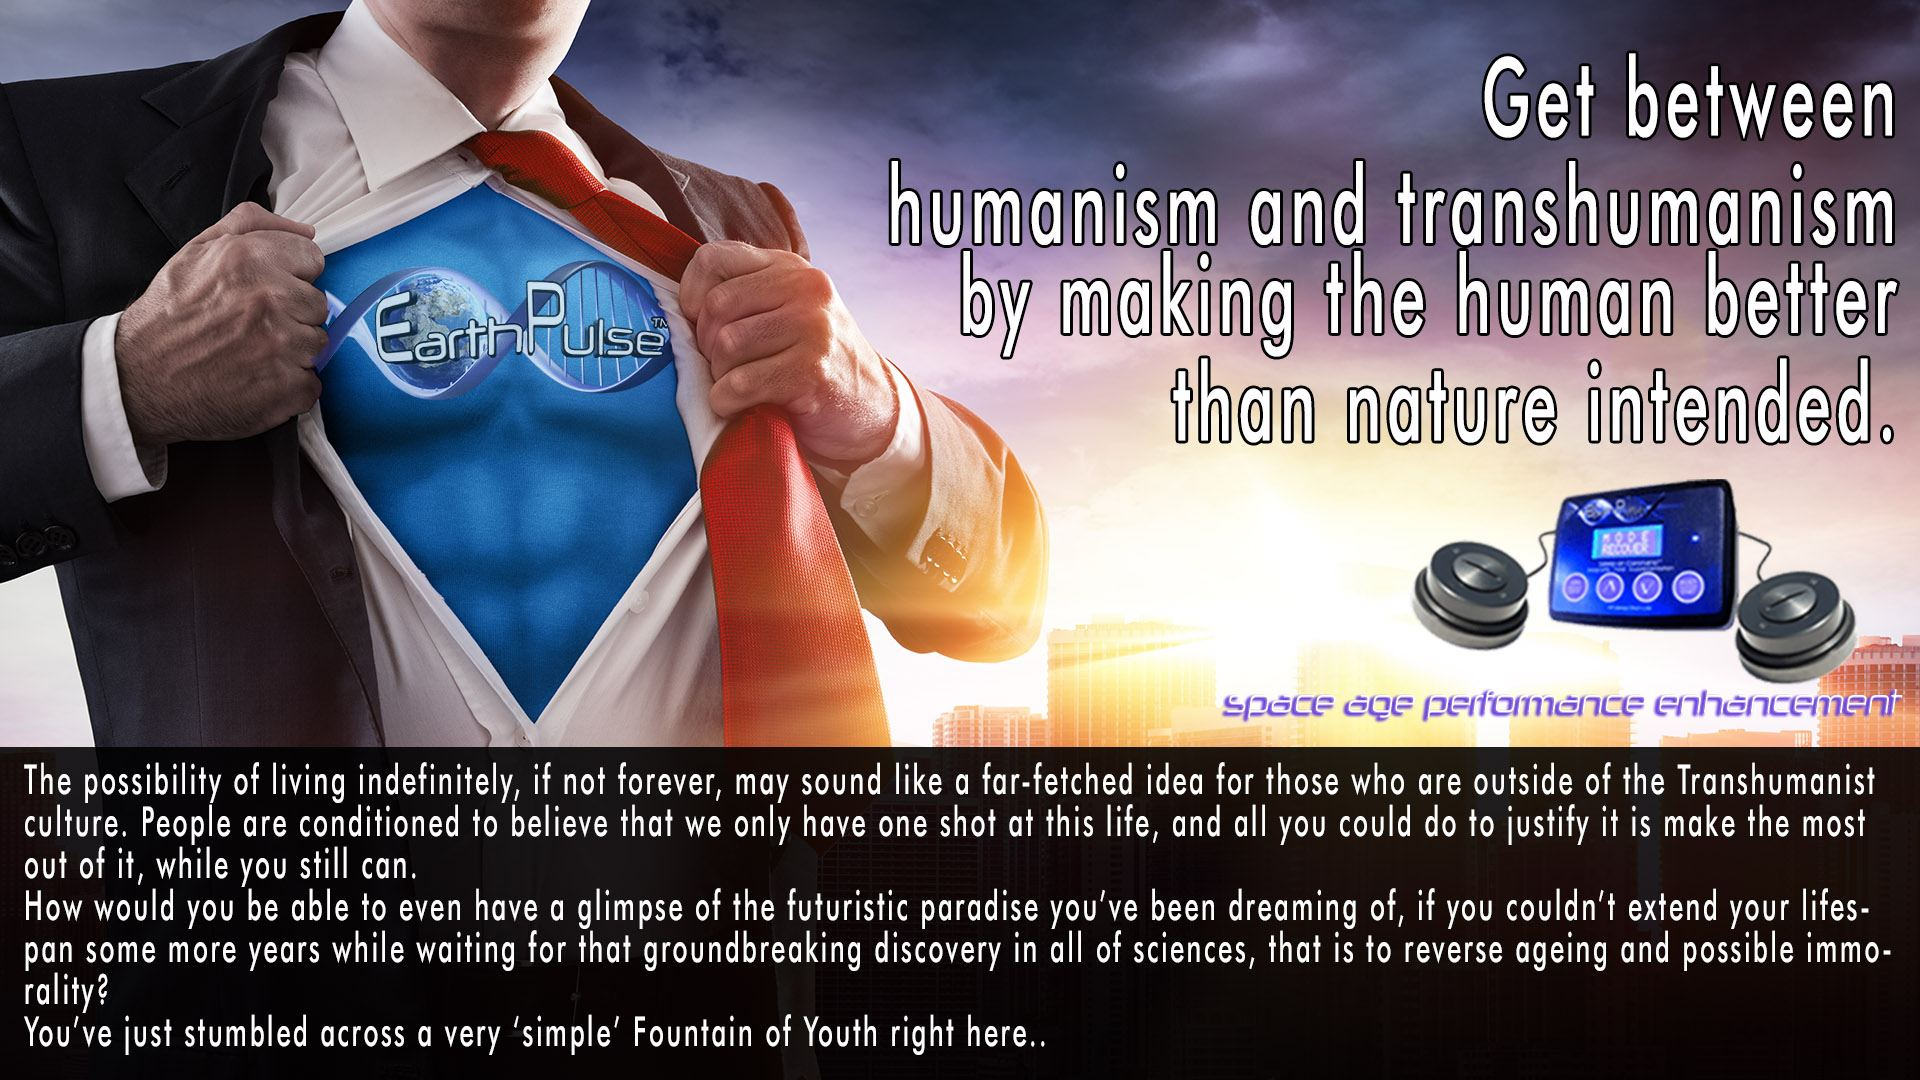 PEMf therapy and Electrical Stimulation for Transhuman Super human performance